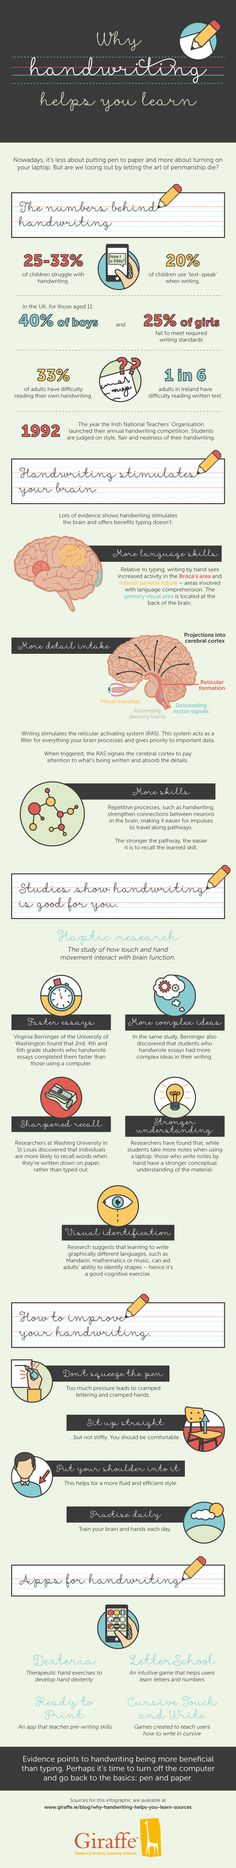 The How Handwriting Enhances Learning Infographic - Please someone in the Phoenix School District read this!